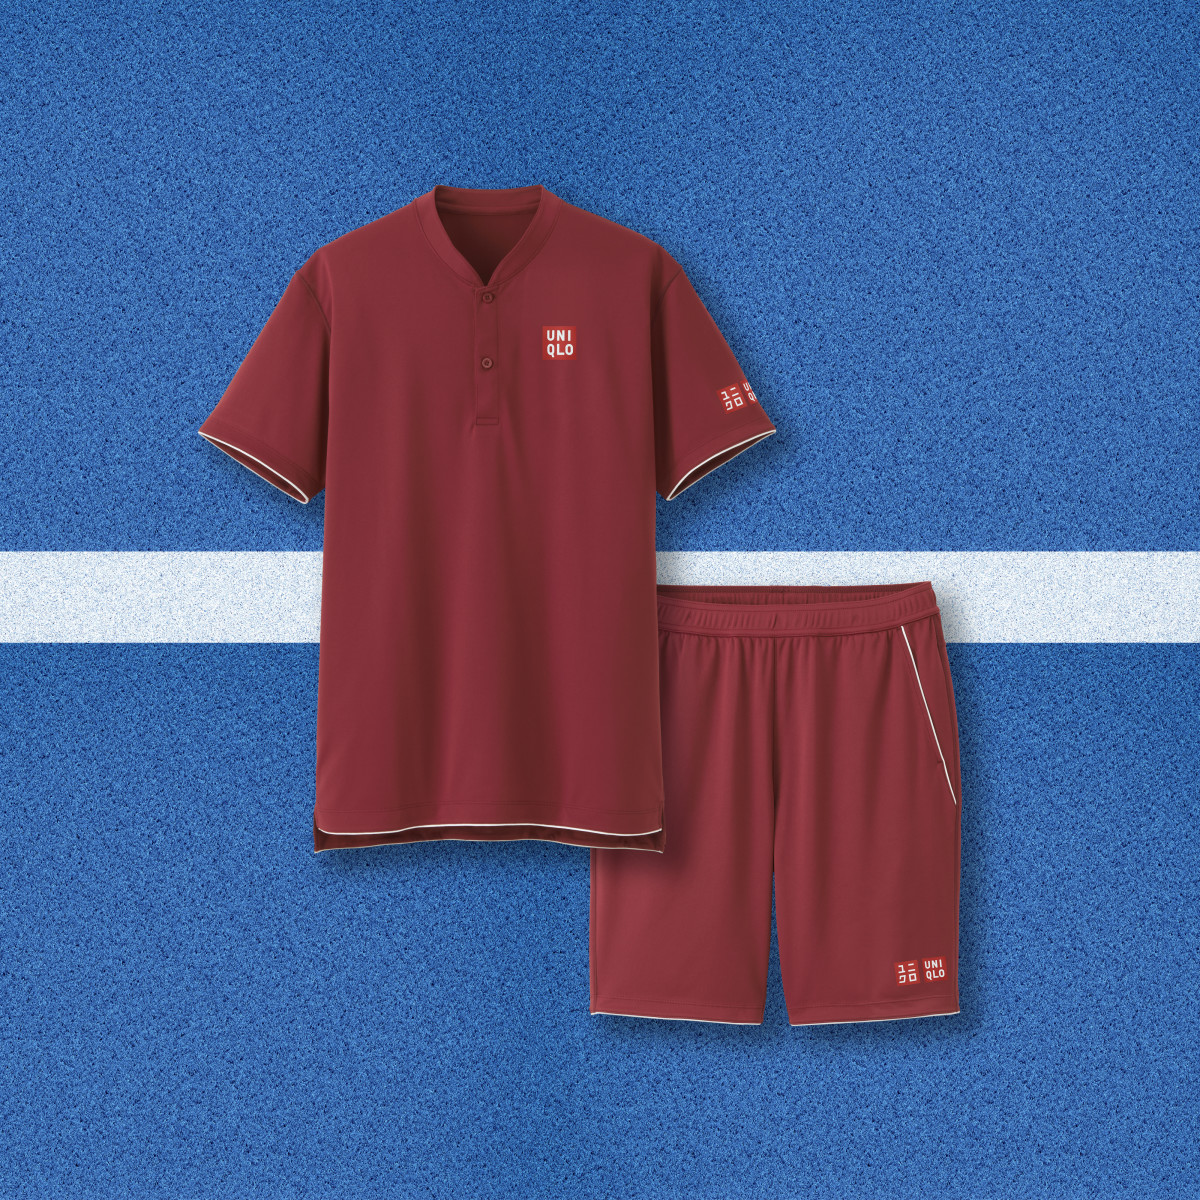 Roger Federer's Uniqlo outfit for the 2018 U.S. Open. Photo: Uniqlo